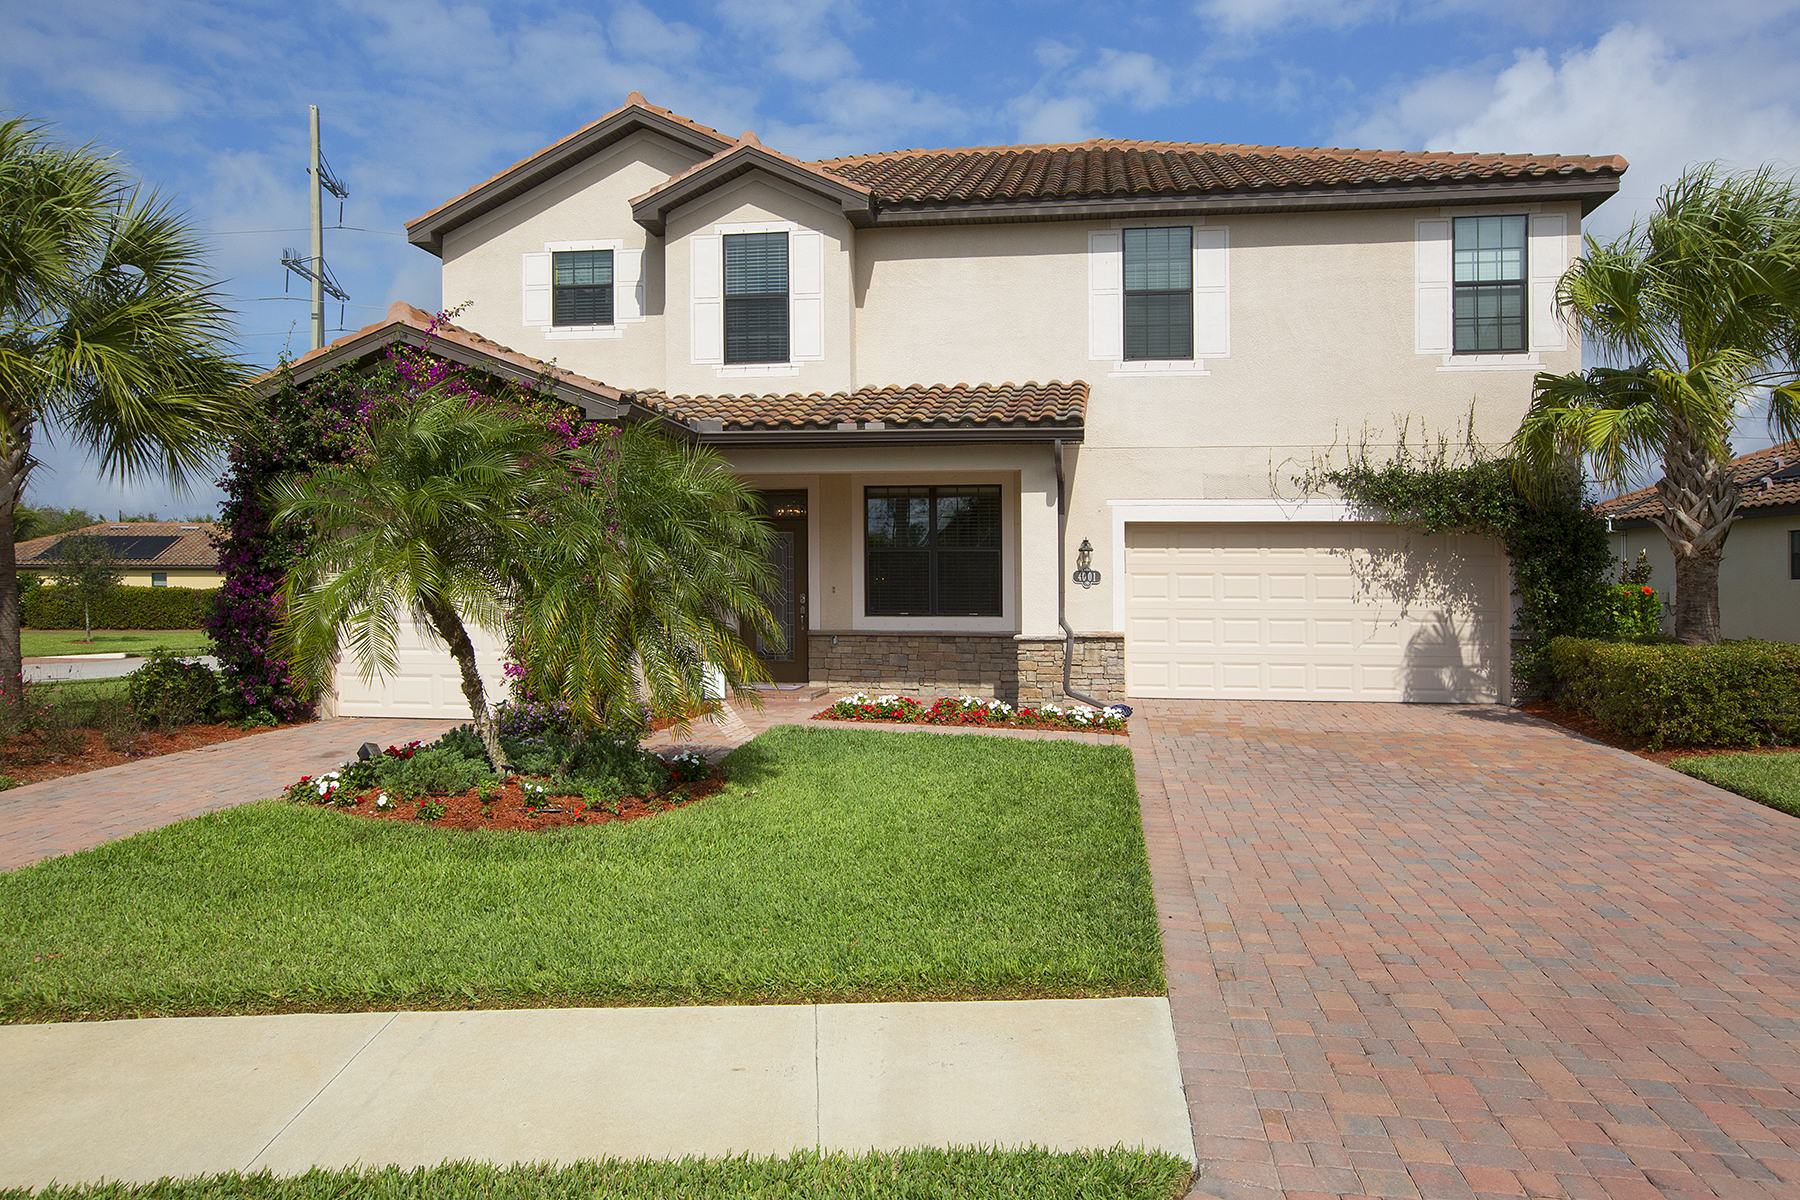 Vivienda unifamiliar por un Venta en COPPER COVE 4001 Treasure Cove Cir, Naples, Florida, 34114 Estados Unidos